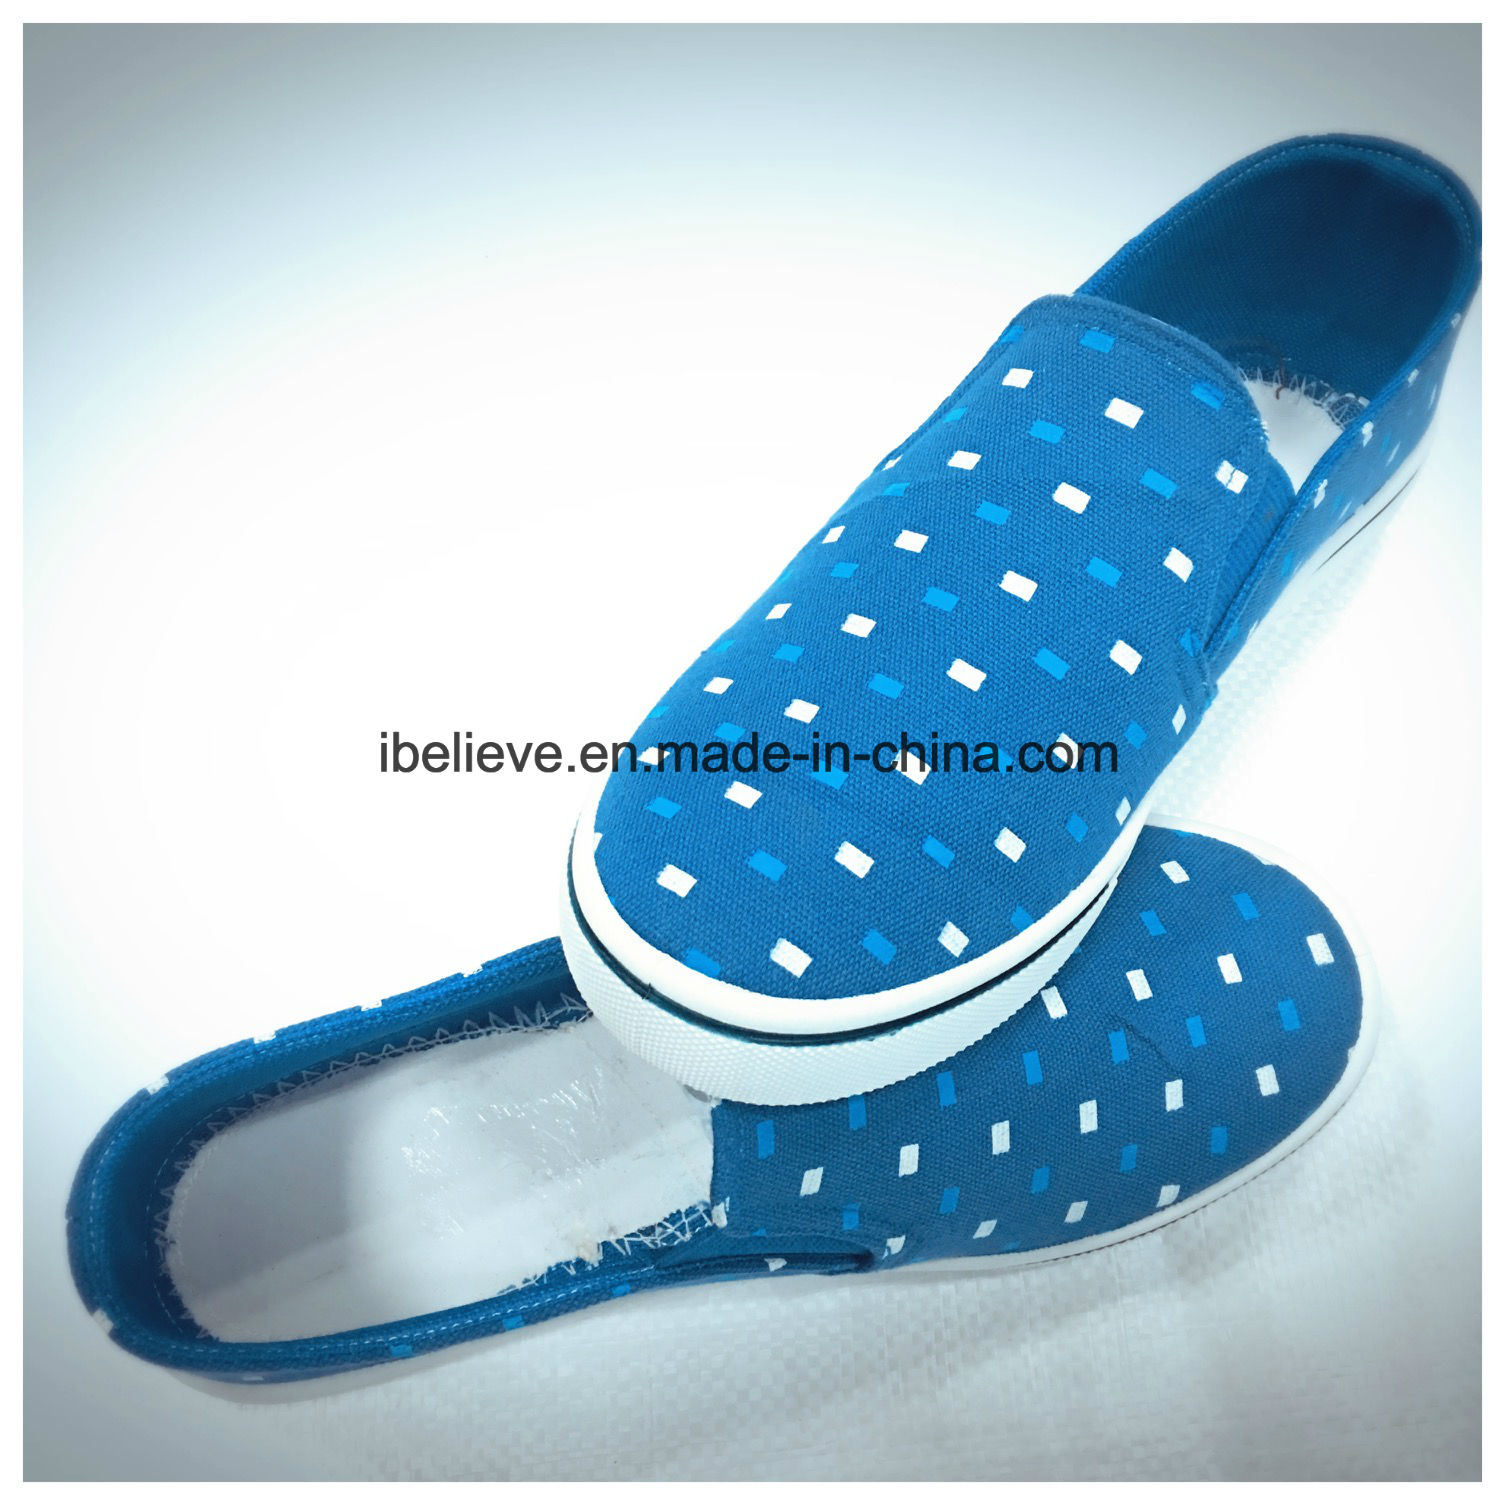 Casual Flat Fashion Shoes for Man and Woman